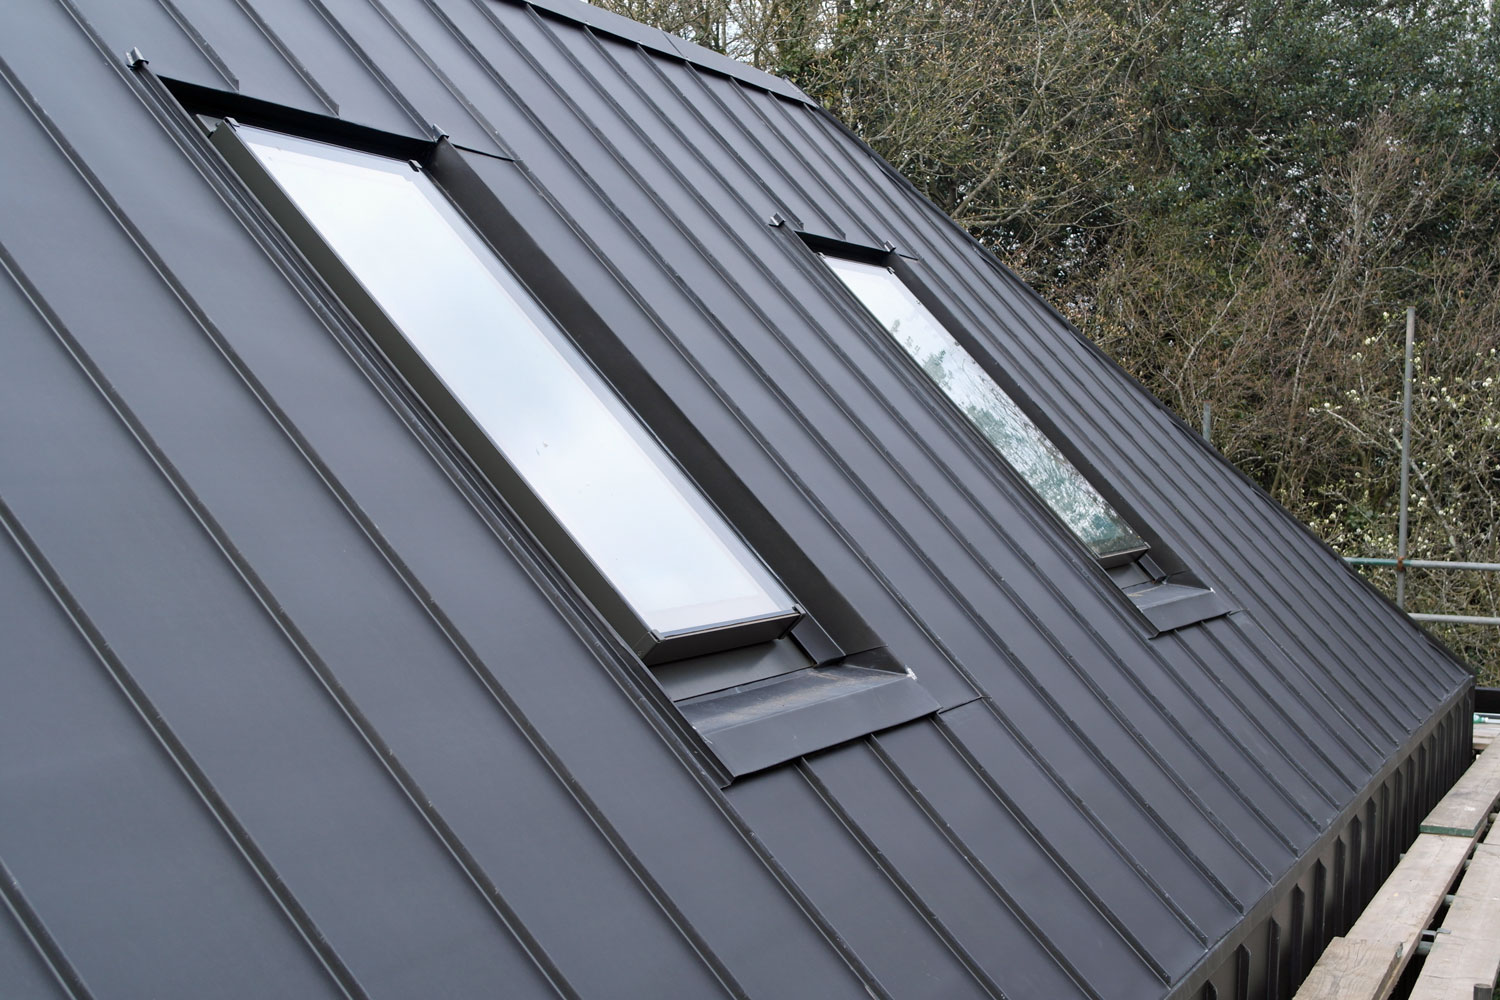 Zinc Clad New Built Barn House In Hurstpierpoint Sussex